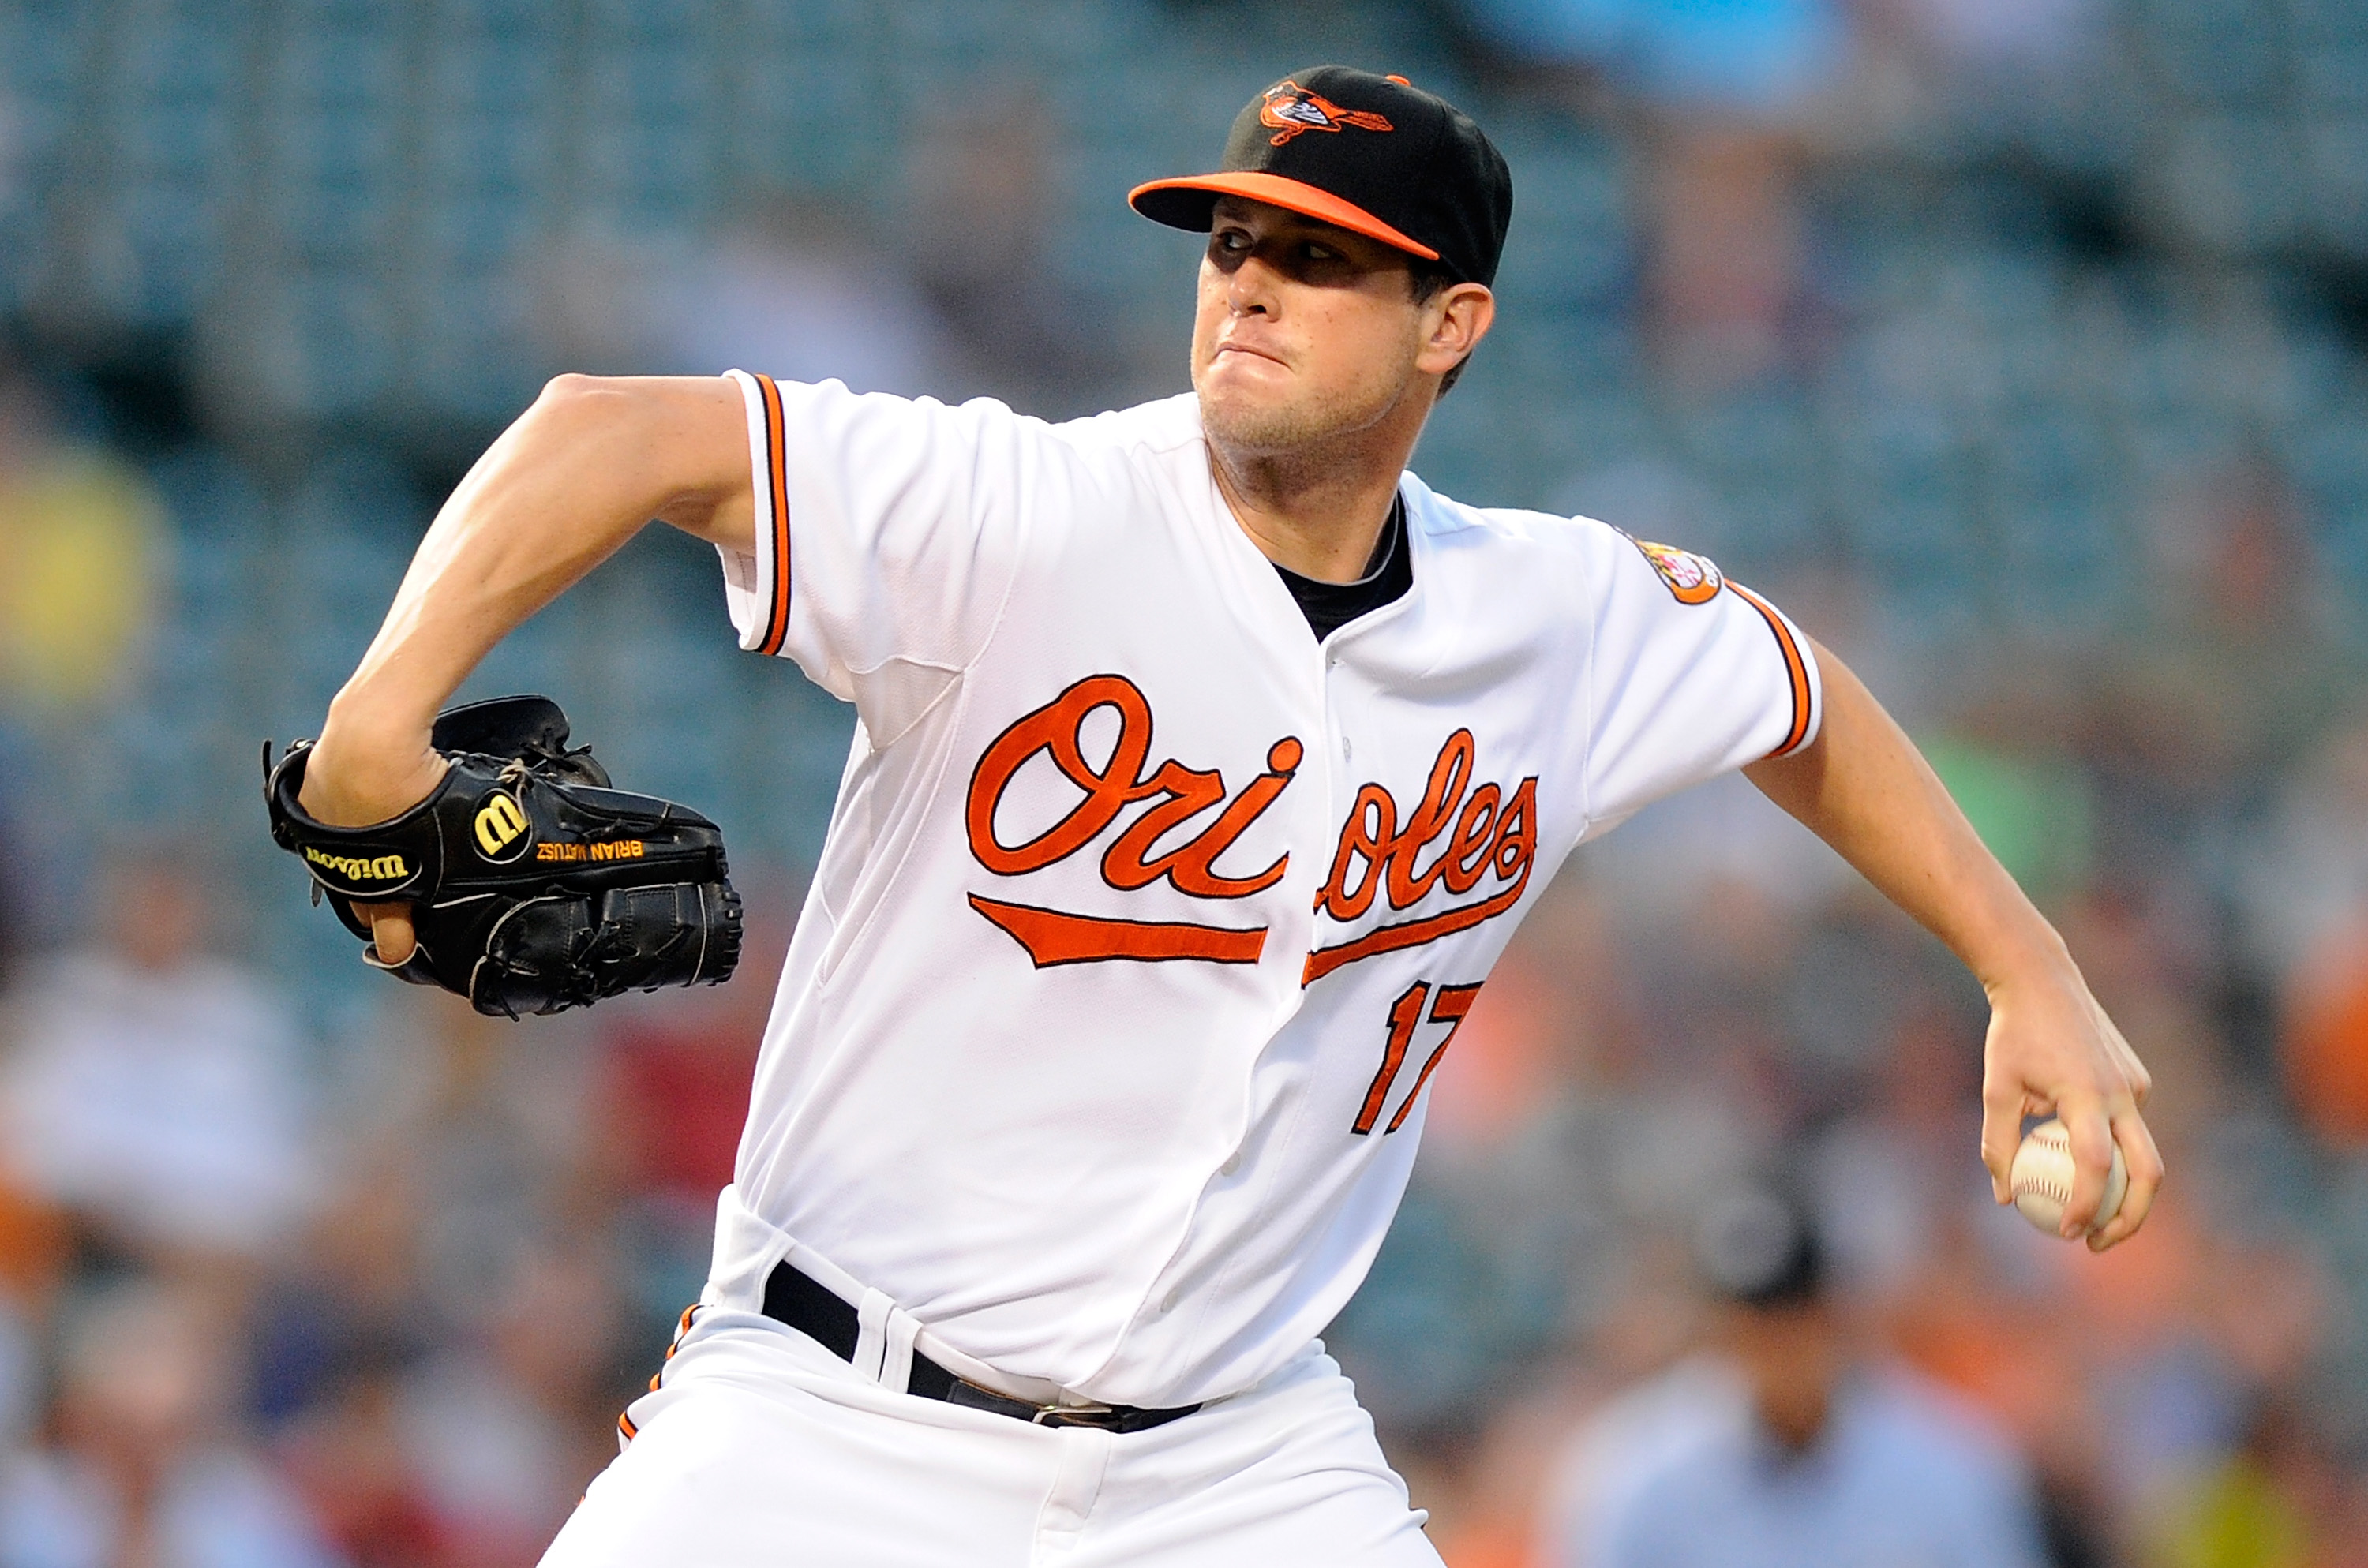 BALTIMORE - AUGUST 09:  Brian Matusz #17 of the Baltimore Orioles pitches against the Chicago White Sox at Camden Yards on August 9, 2010 in Baltimore, Maryland.  (Photo by Greg Fiume/Getty Images)